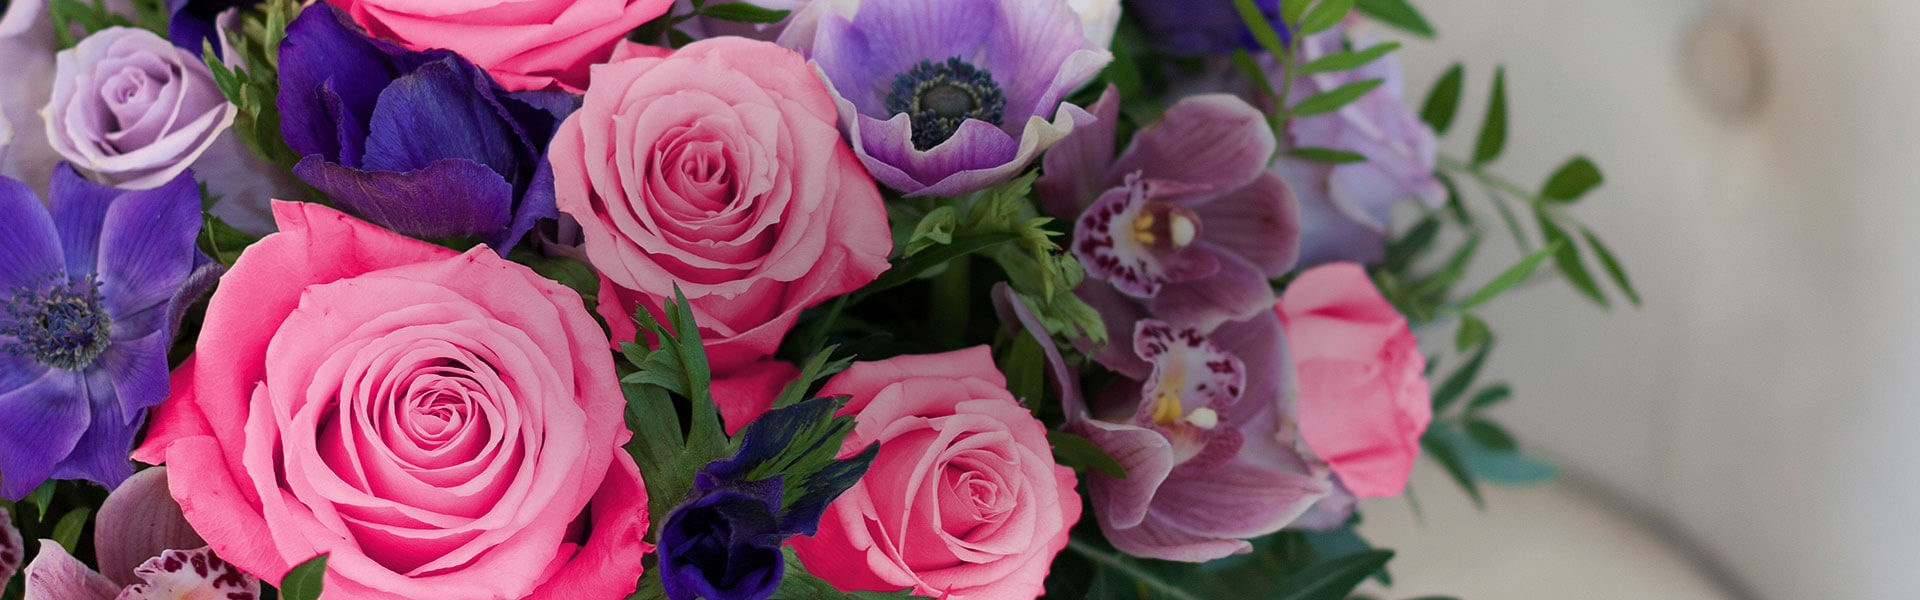 Wide angle of a bouquet of blue, pink and purple flowers